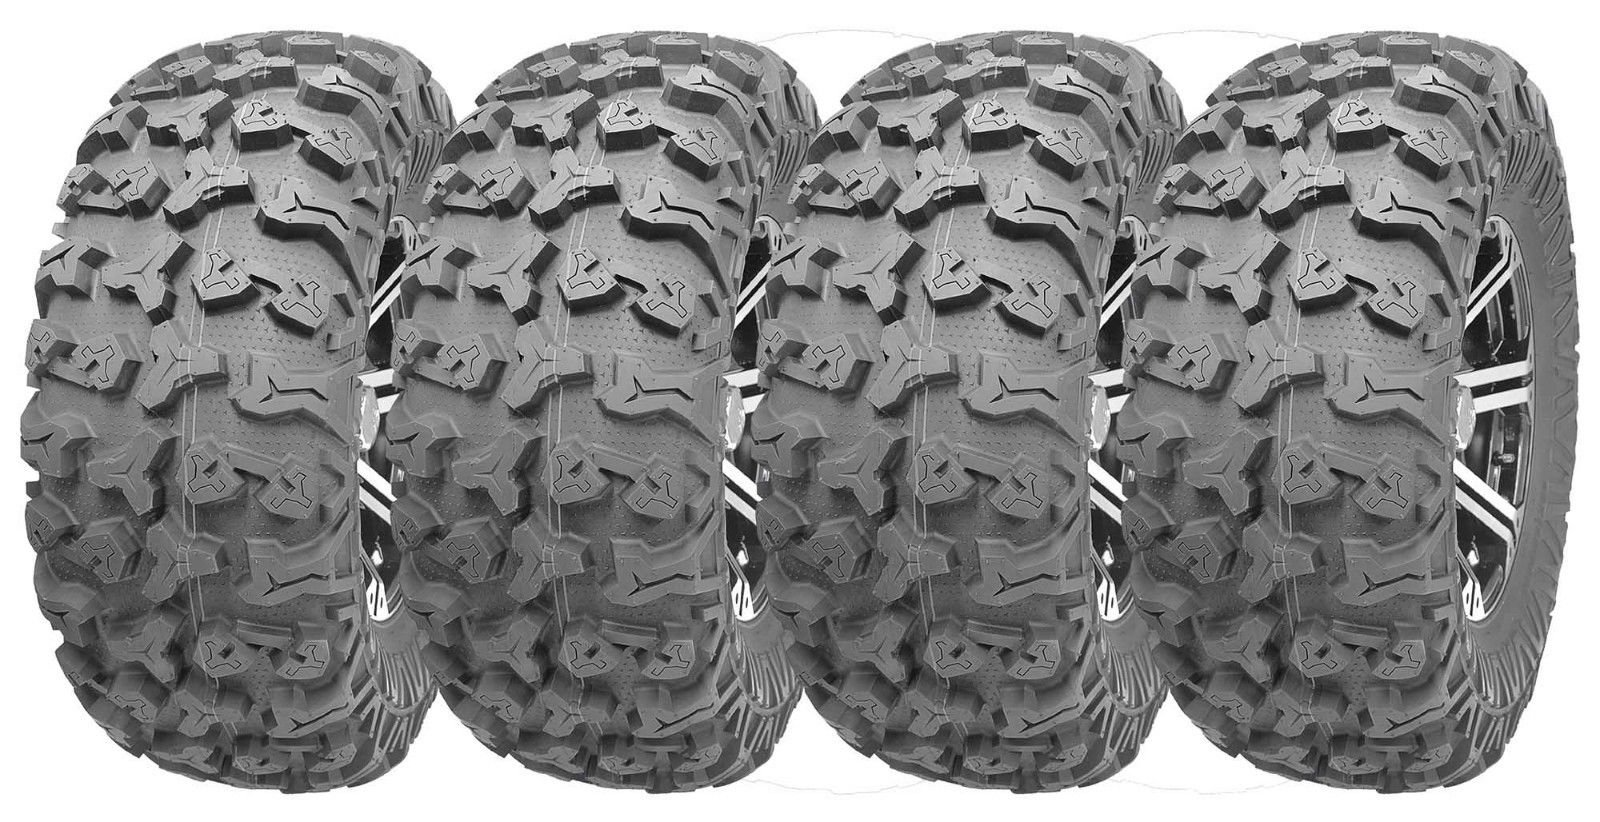 Full Set Wanda ATV/UTV Tires 27x9R14 Front 27x11R14 Rear /8PR Radial Deep Tread by Wanda (Image #1)